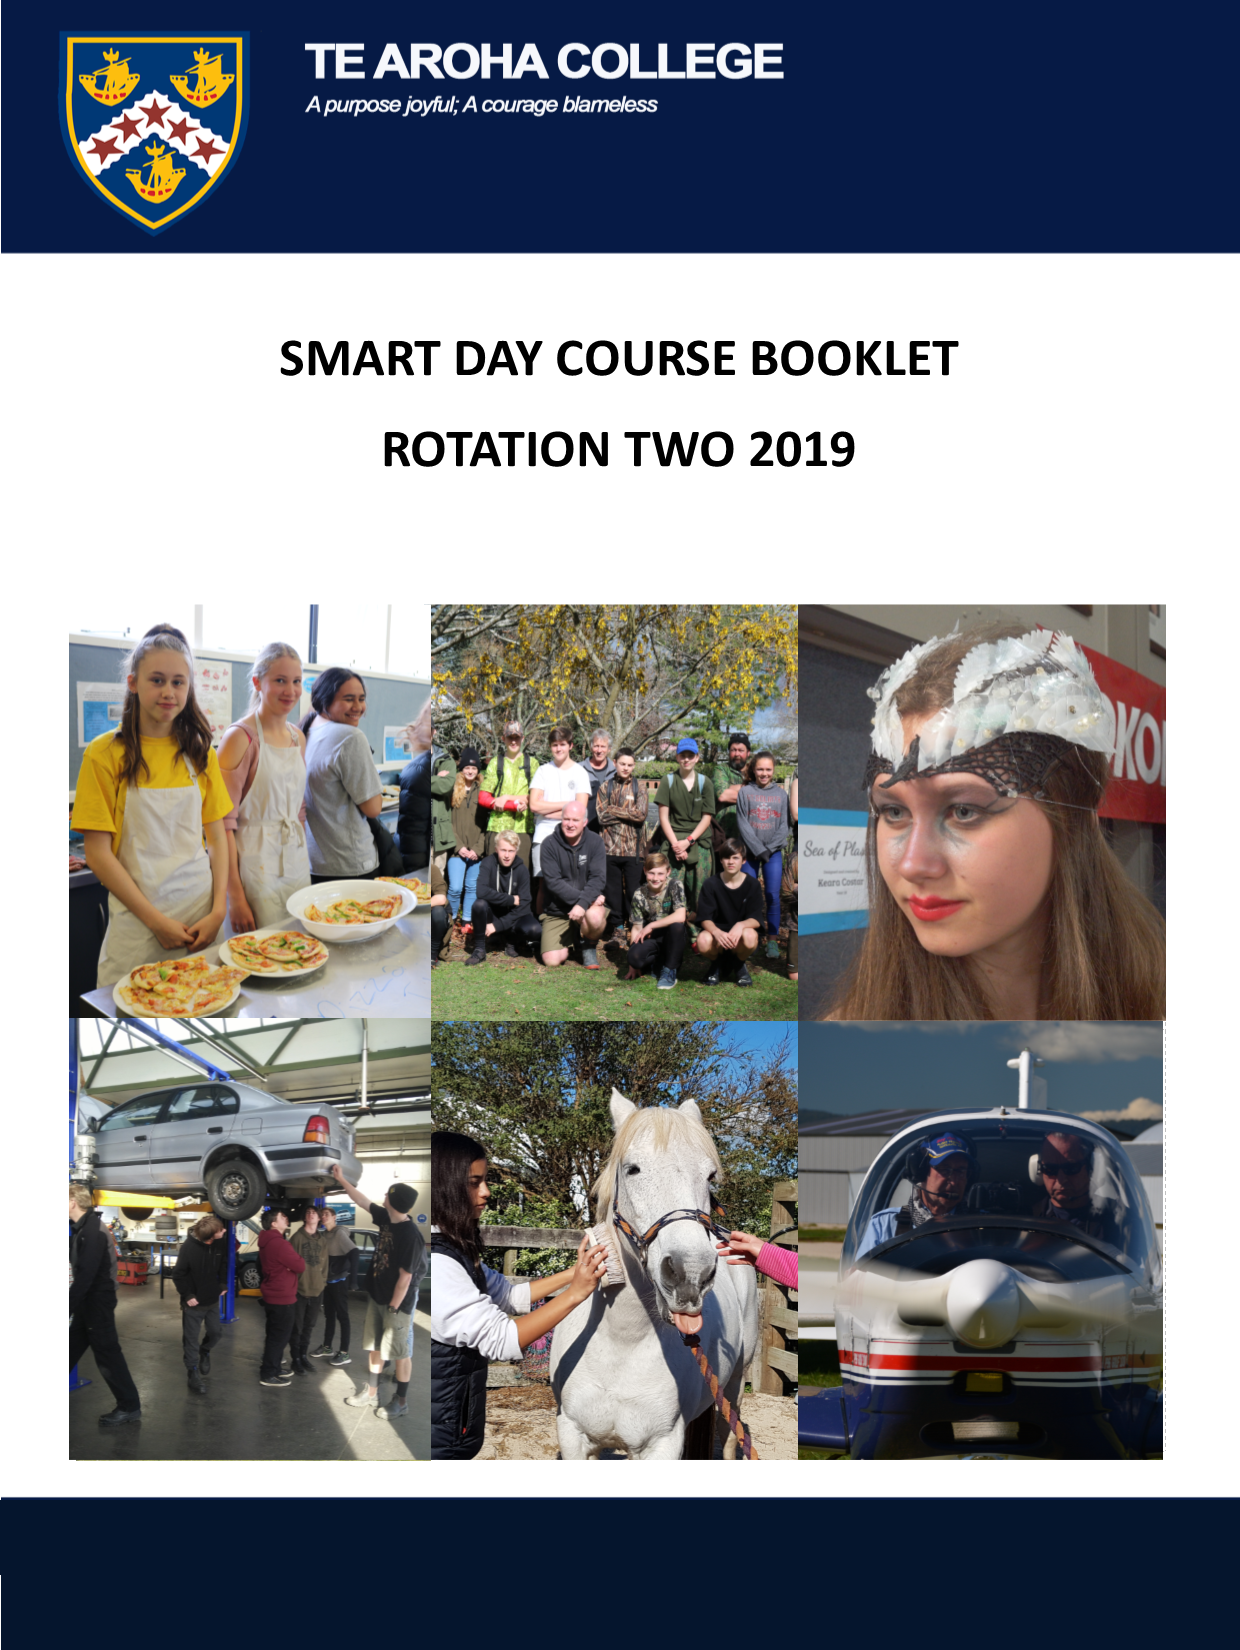 Smart Day Course Booklet Rotation Two 2019